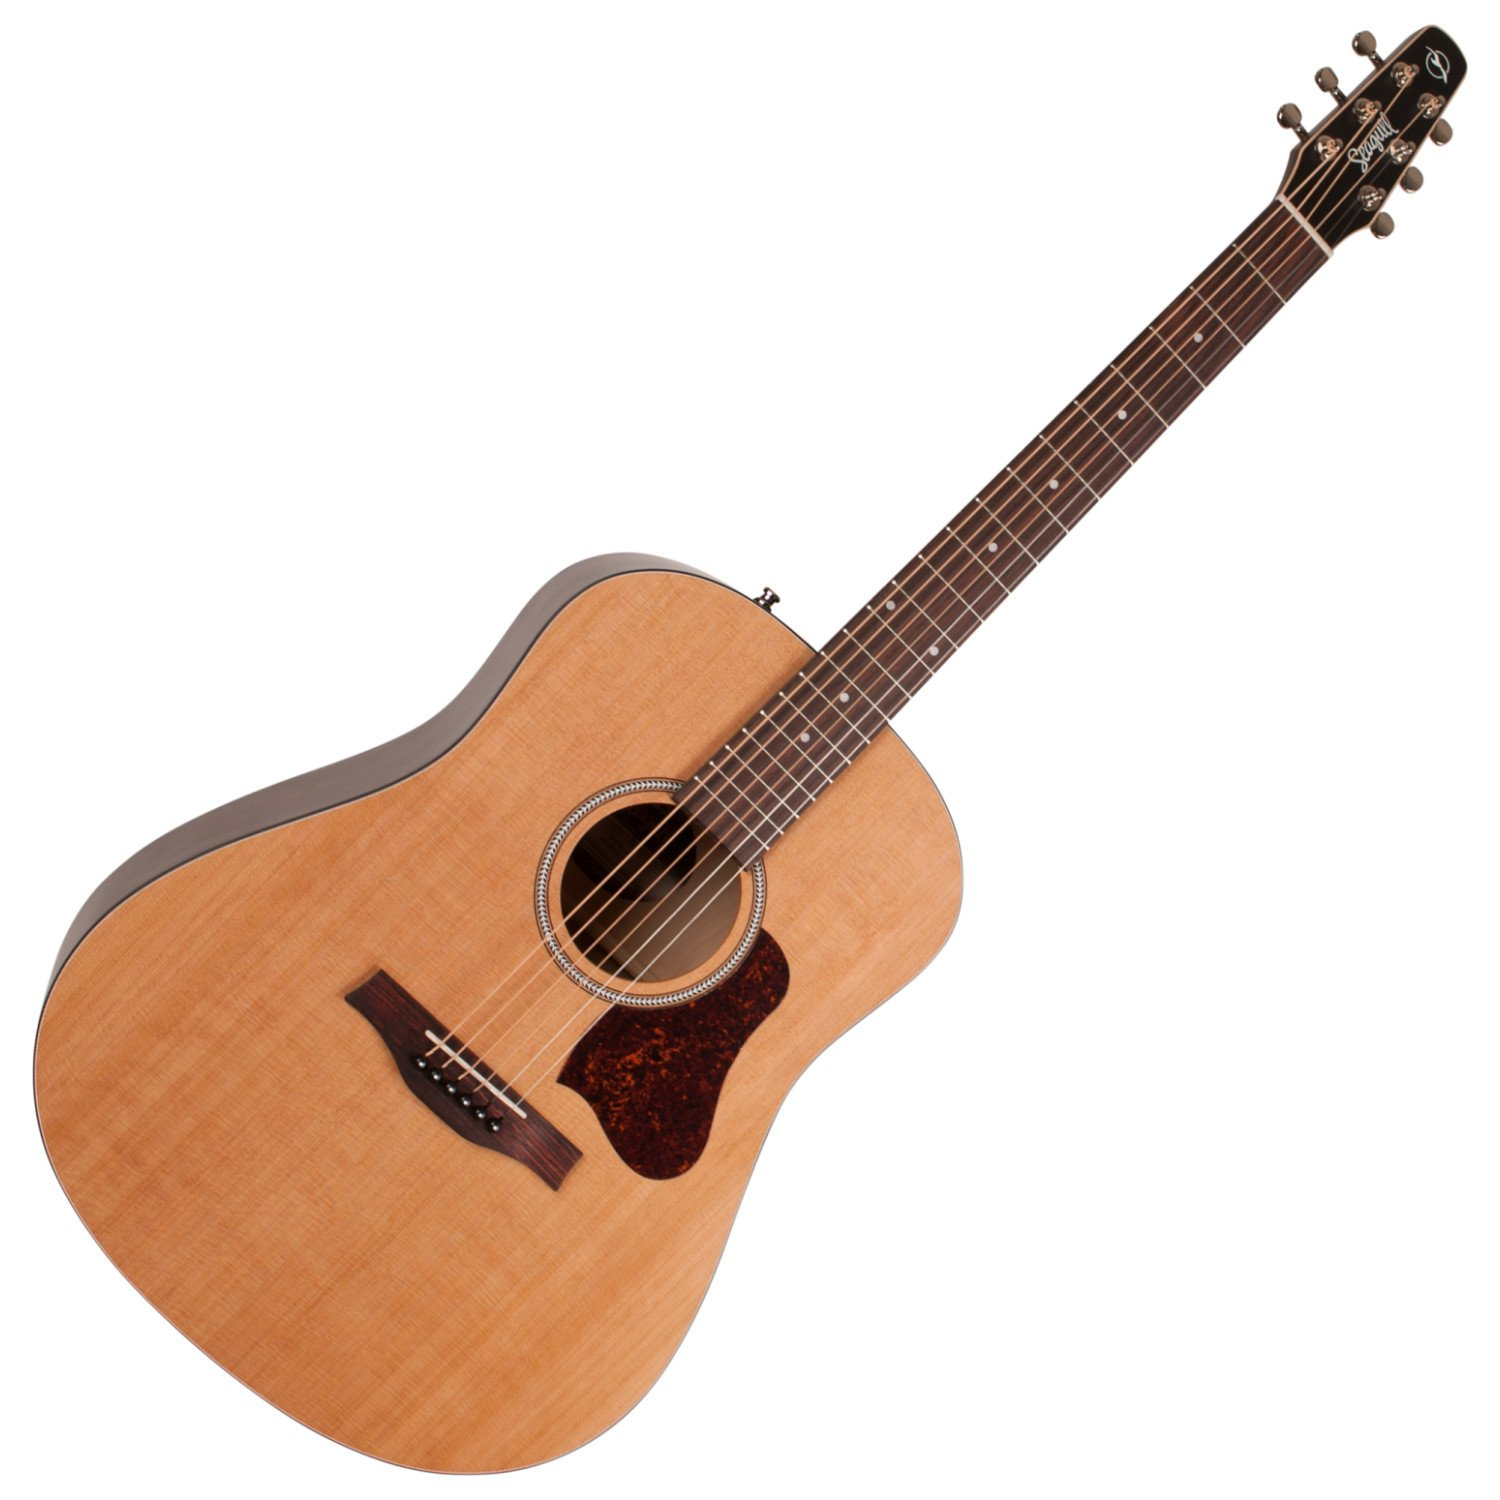 Seagull 046409 S6 Original SLIM Acoustic Guitar by Seagull